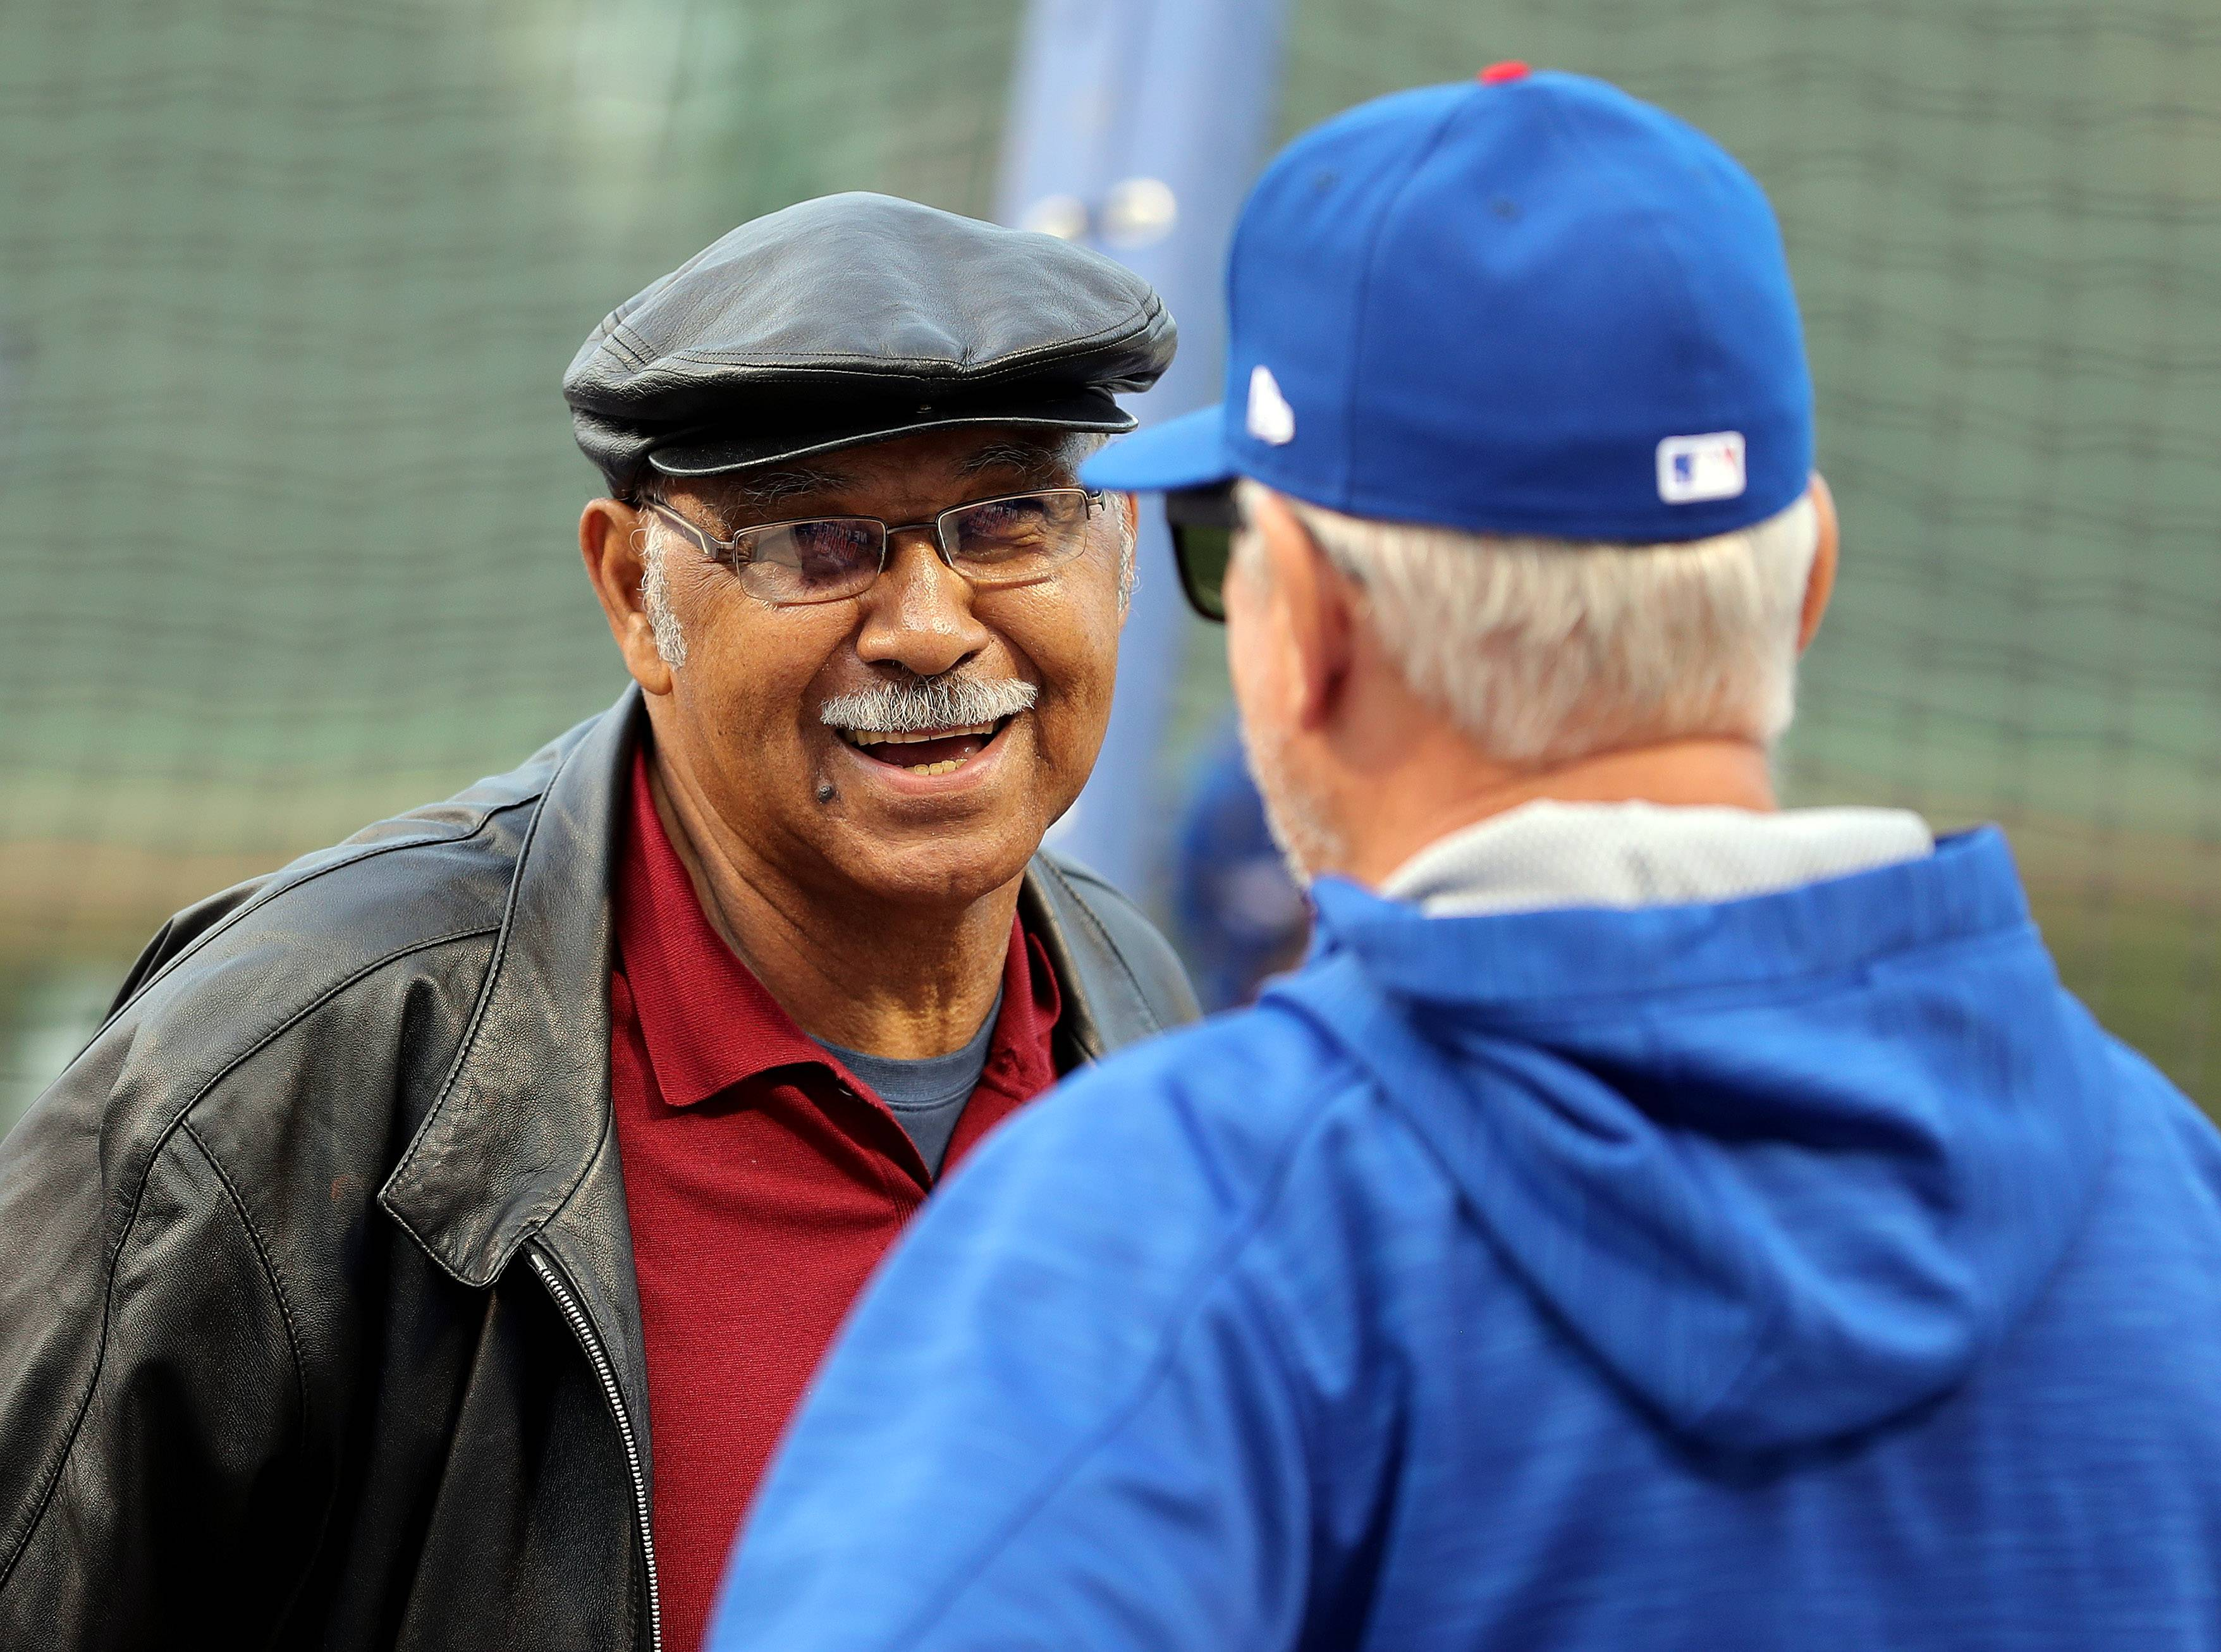 Former Cub Billy Williams, left, talks with Chicago Cubs manager Joe Maddon during game 1 of the National League championship series against the Los Angeles Dodgers at Wrigley Field in Chicago on Saturday, October, 15, 2016.